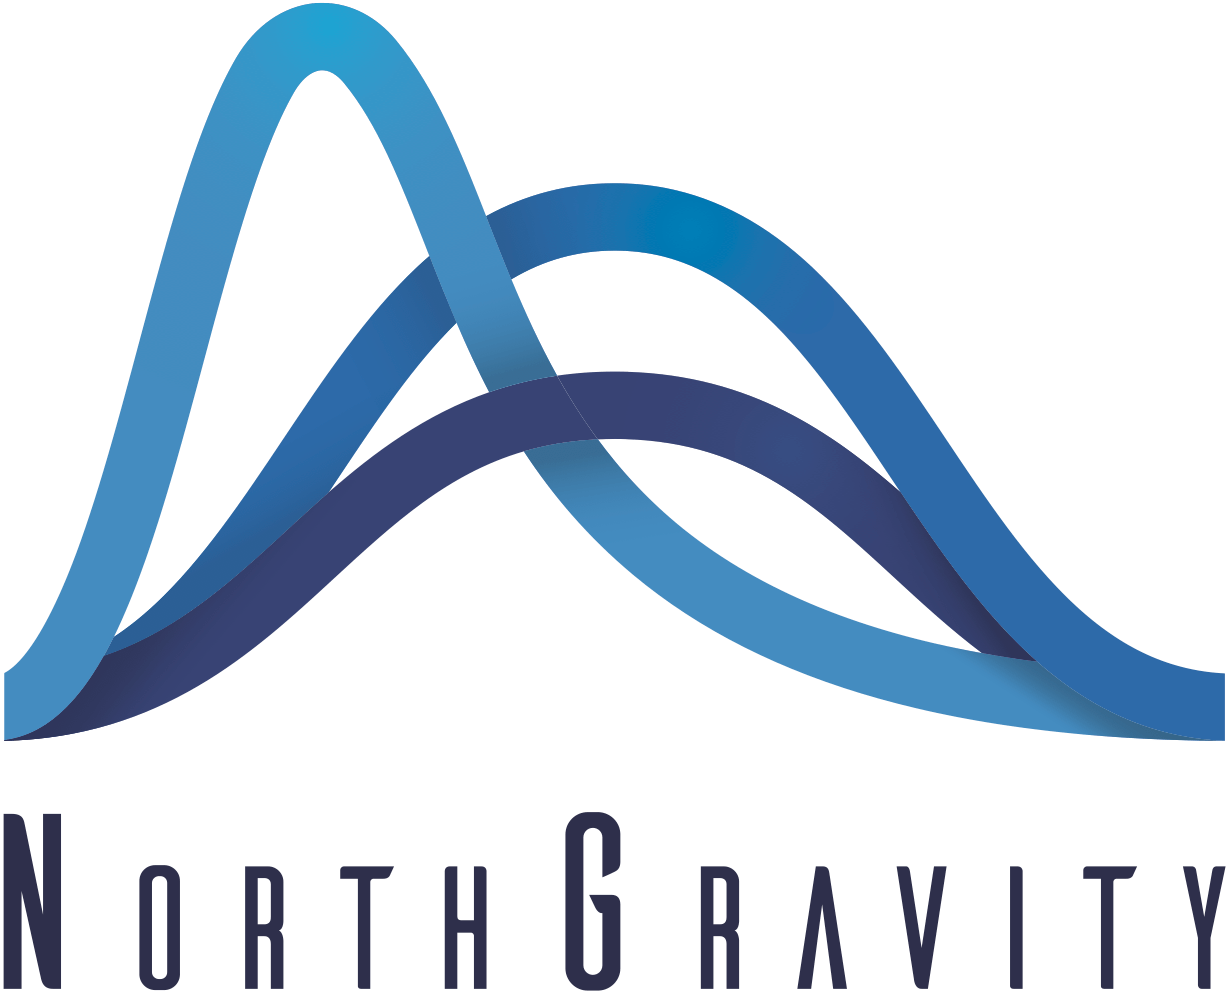 NorthGravity Announces Integration With AWS Data Exchange April 27th, 2021